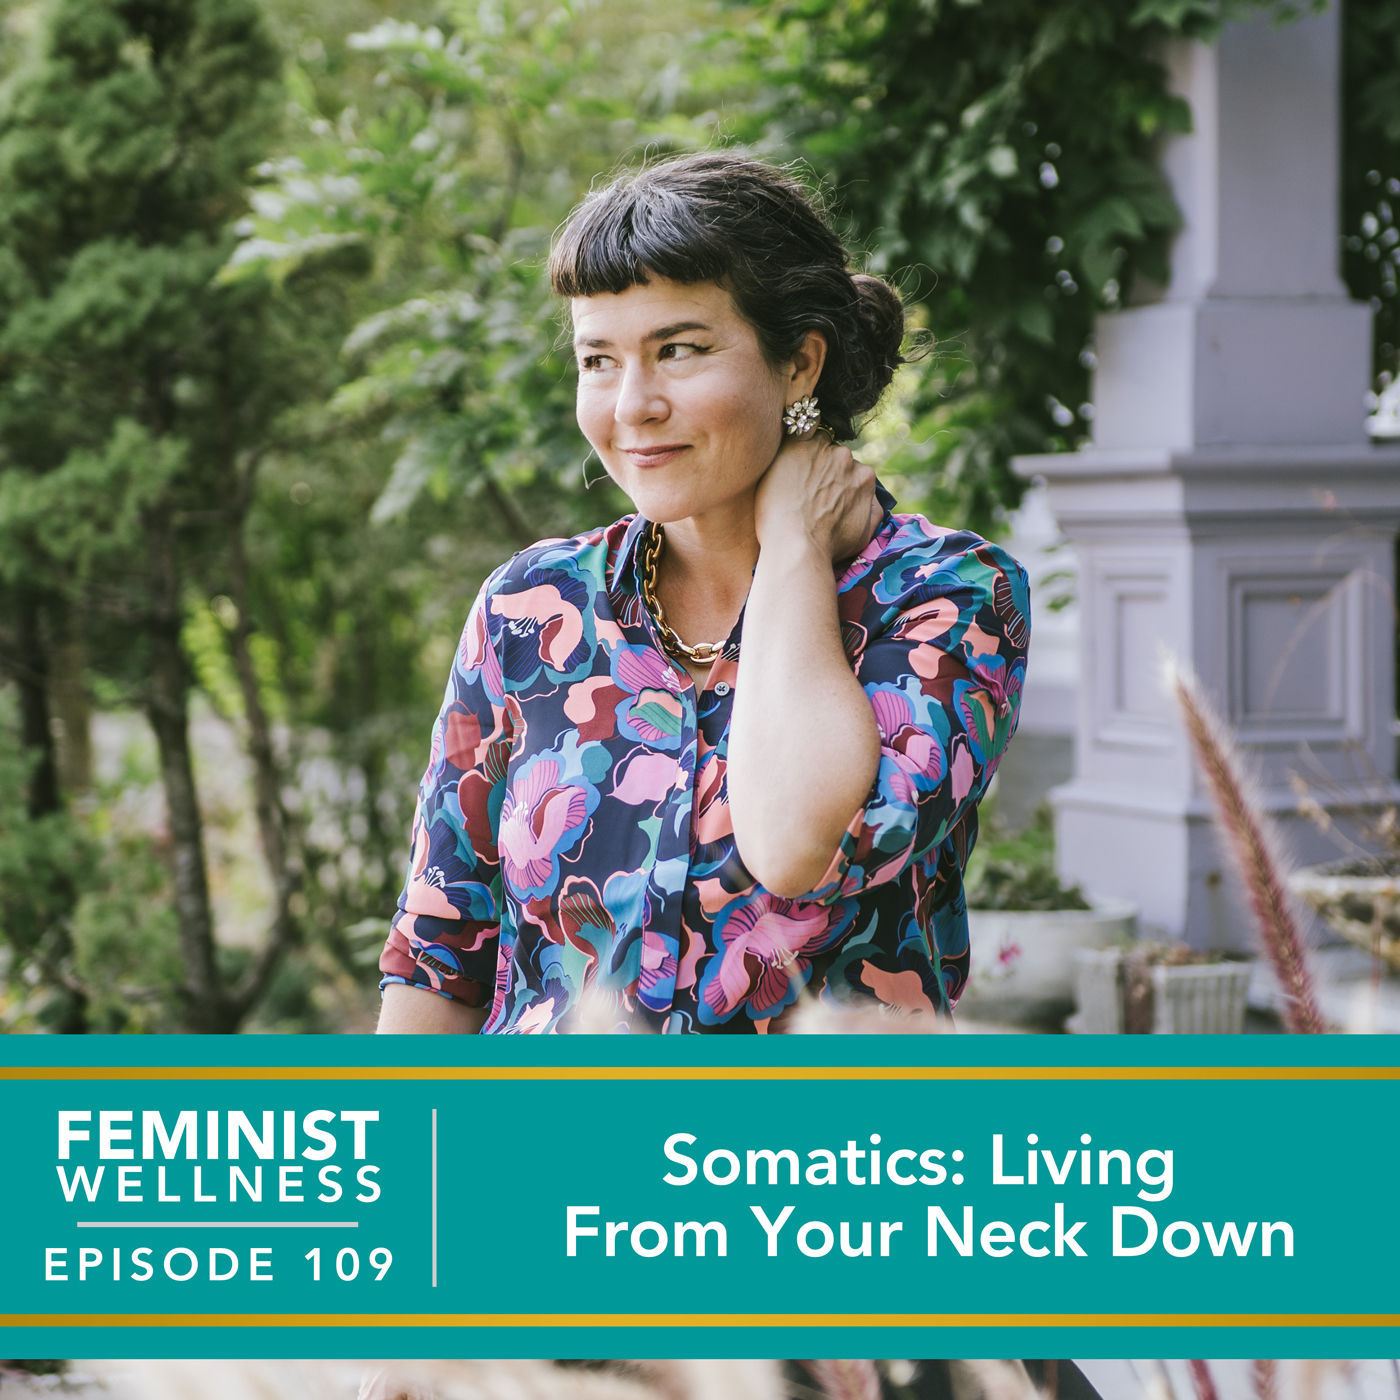 Feminist Wellness with Victoria Albina   Somatics: Living From Your Neck Down